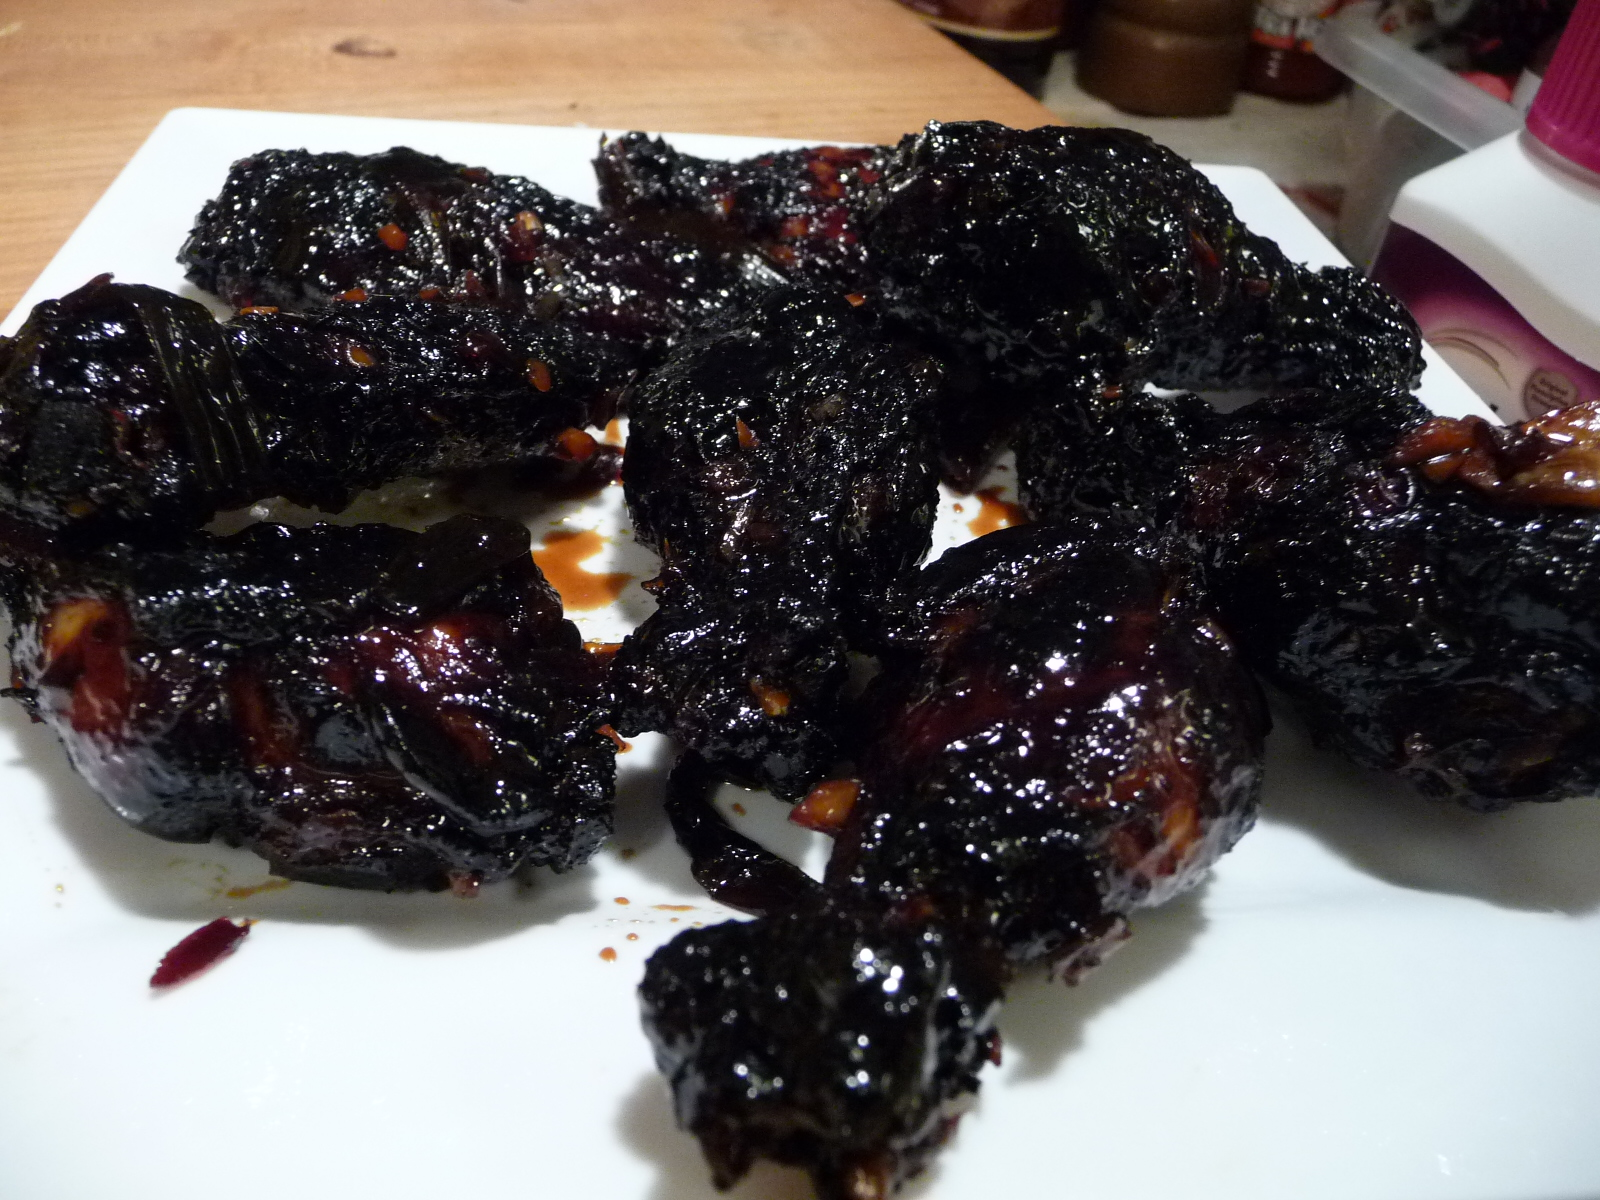 coal black wings sauced